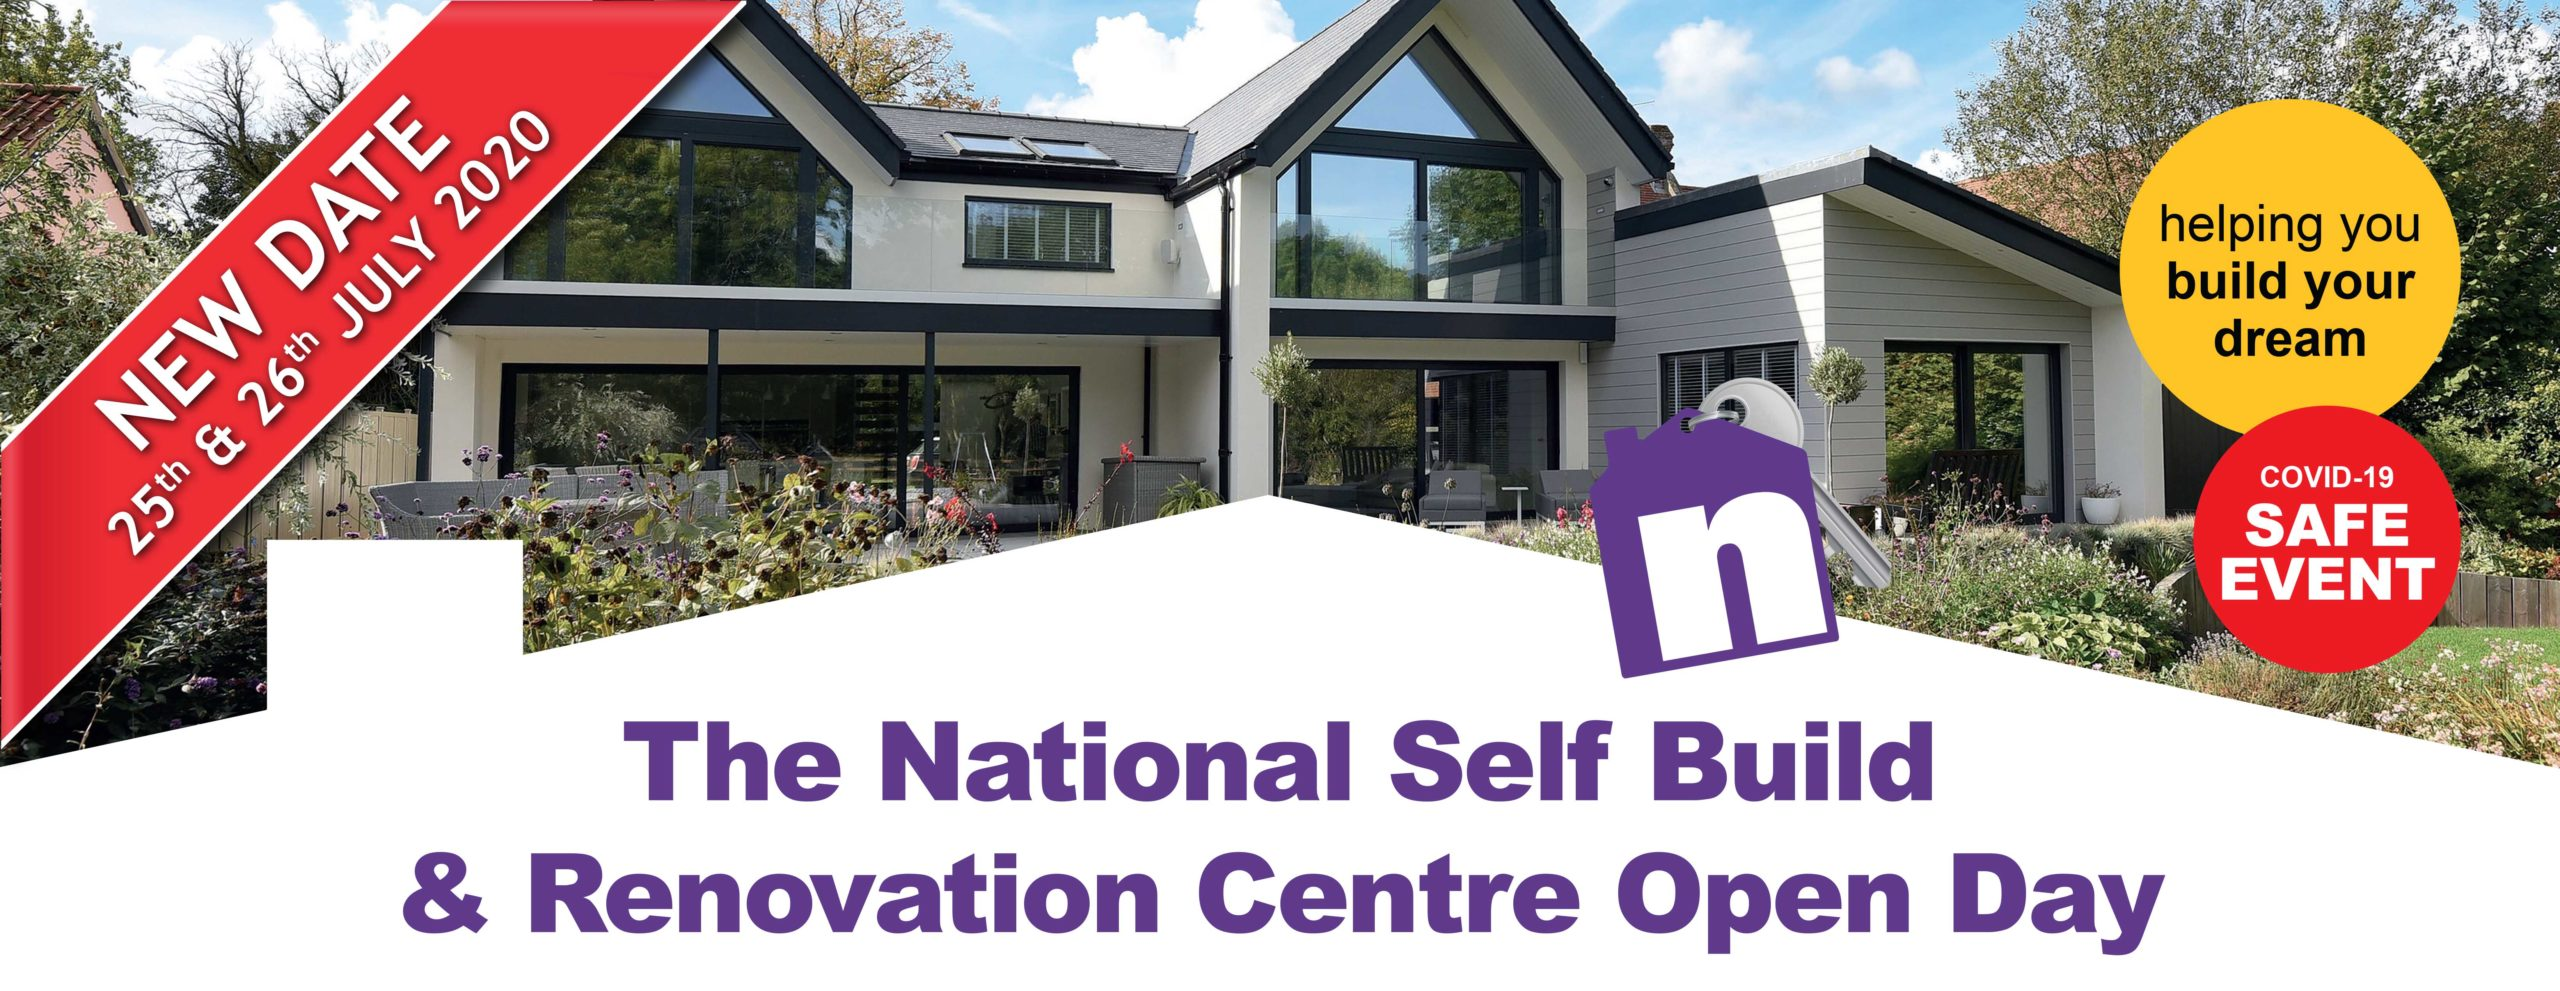 National Self Build and Renovation Open Day July 2020. Visit Premier Loft Ladders on stand 168